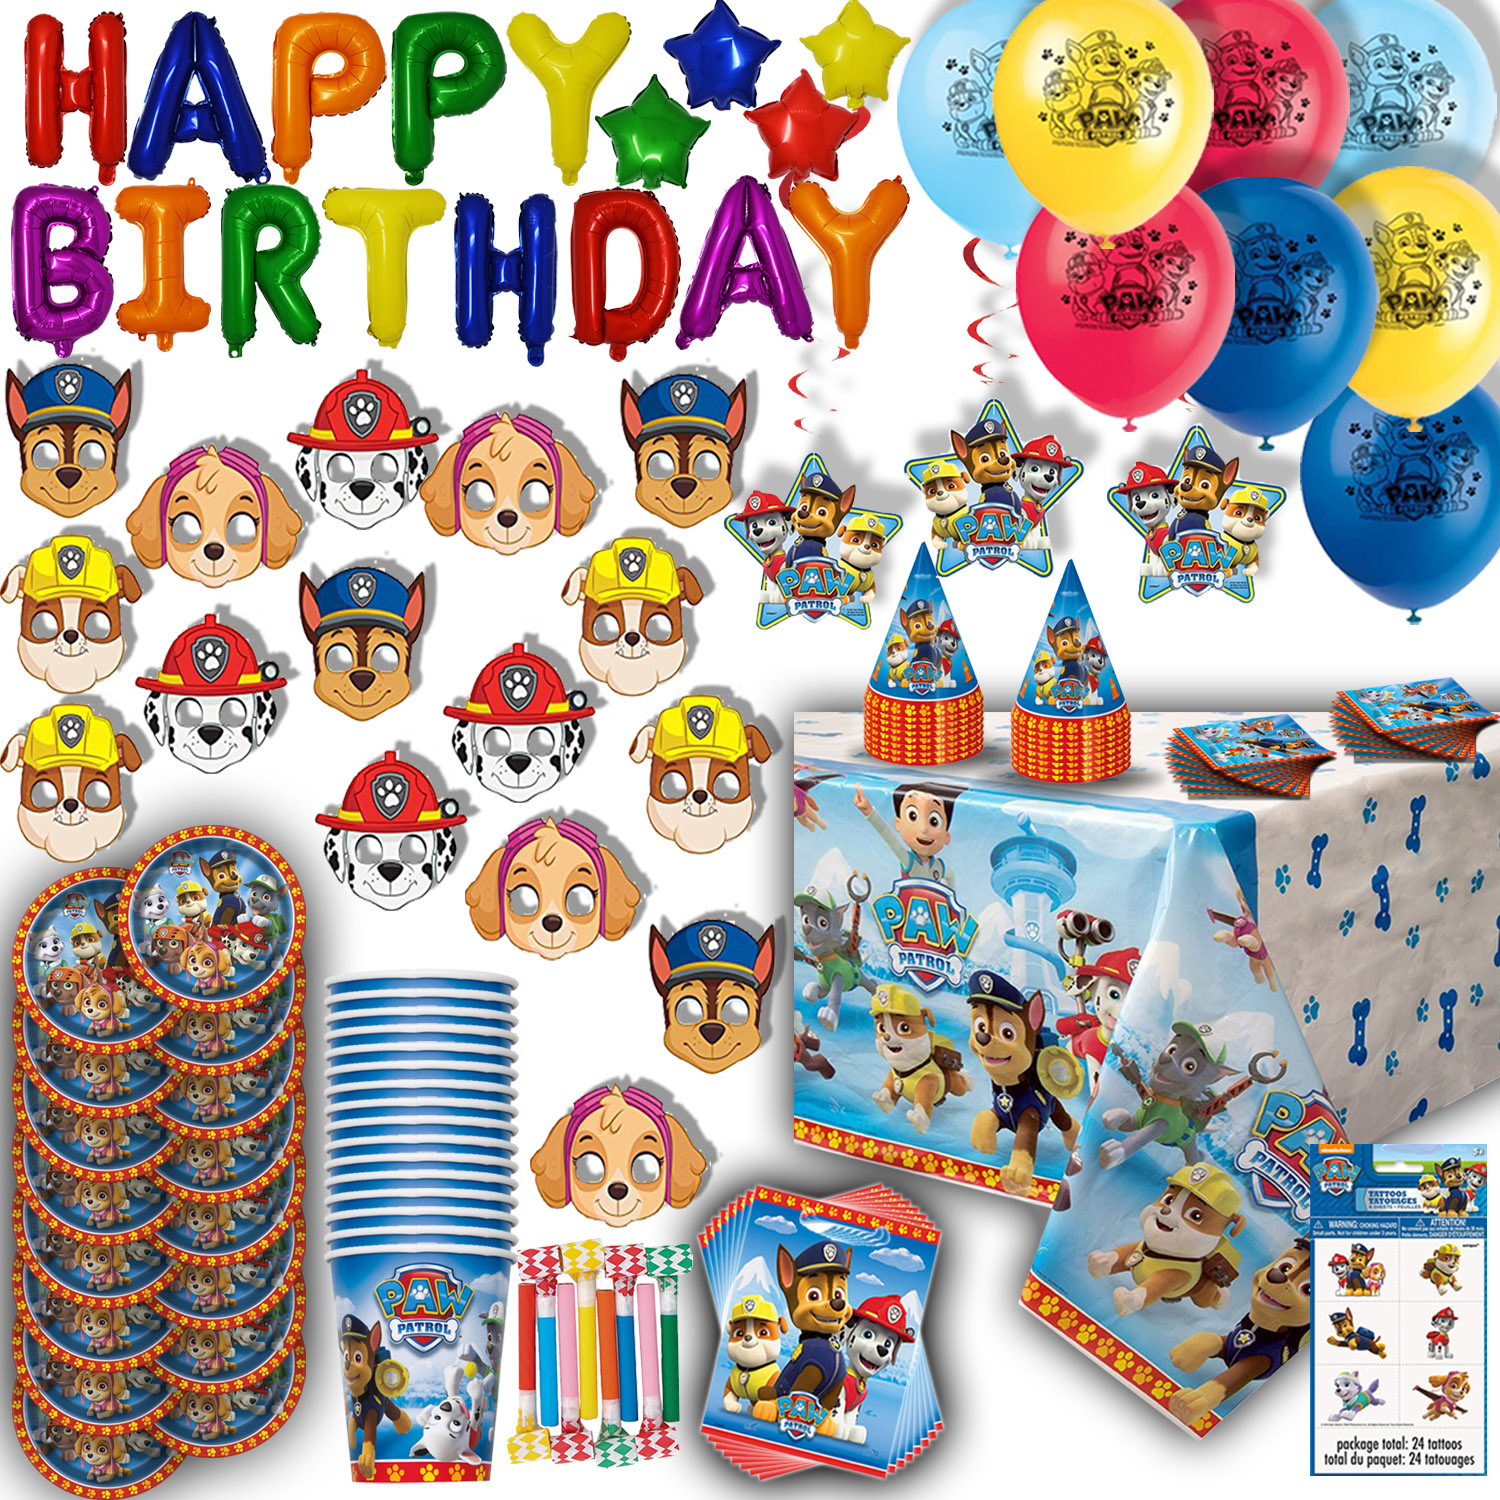 Paw Patrol Party for 16 - Plates, Cups, Napkins, Balloons, Inflatable HAPPY BIRTHDAY Banner, Masks, Loot Bags, Hanging Swirls, Tattoos, Table Cover, Blowouts - Decorations + Supplies